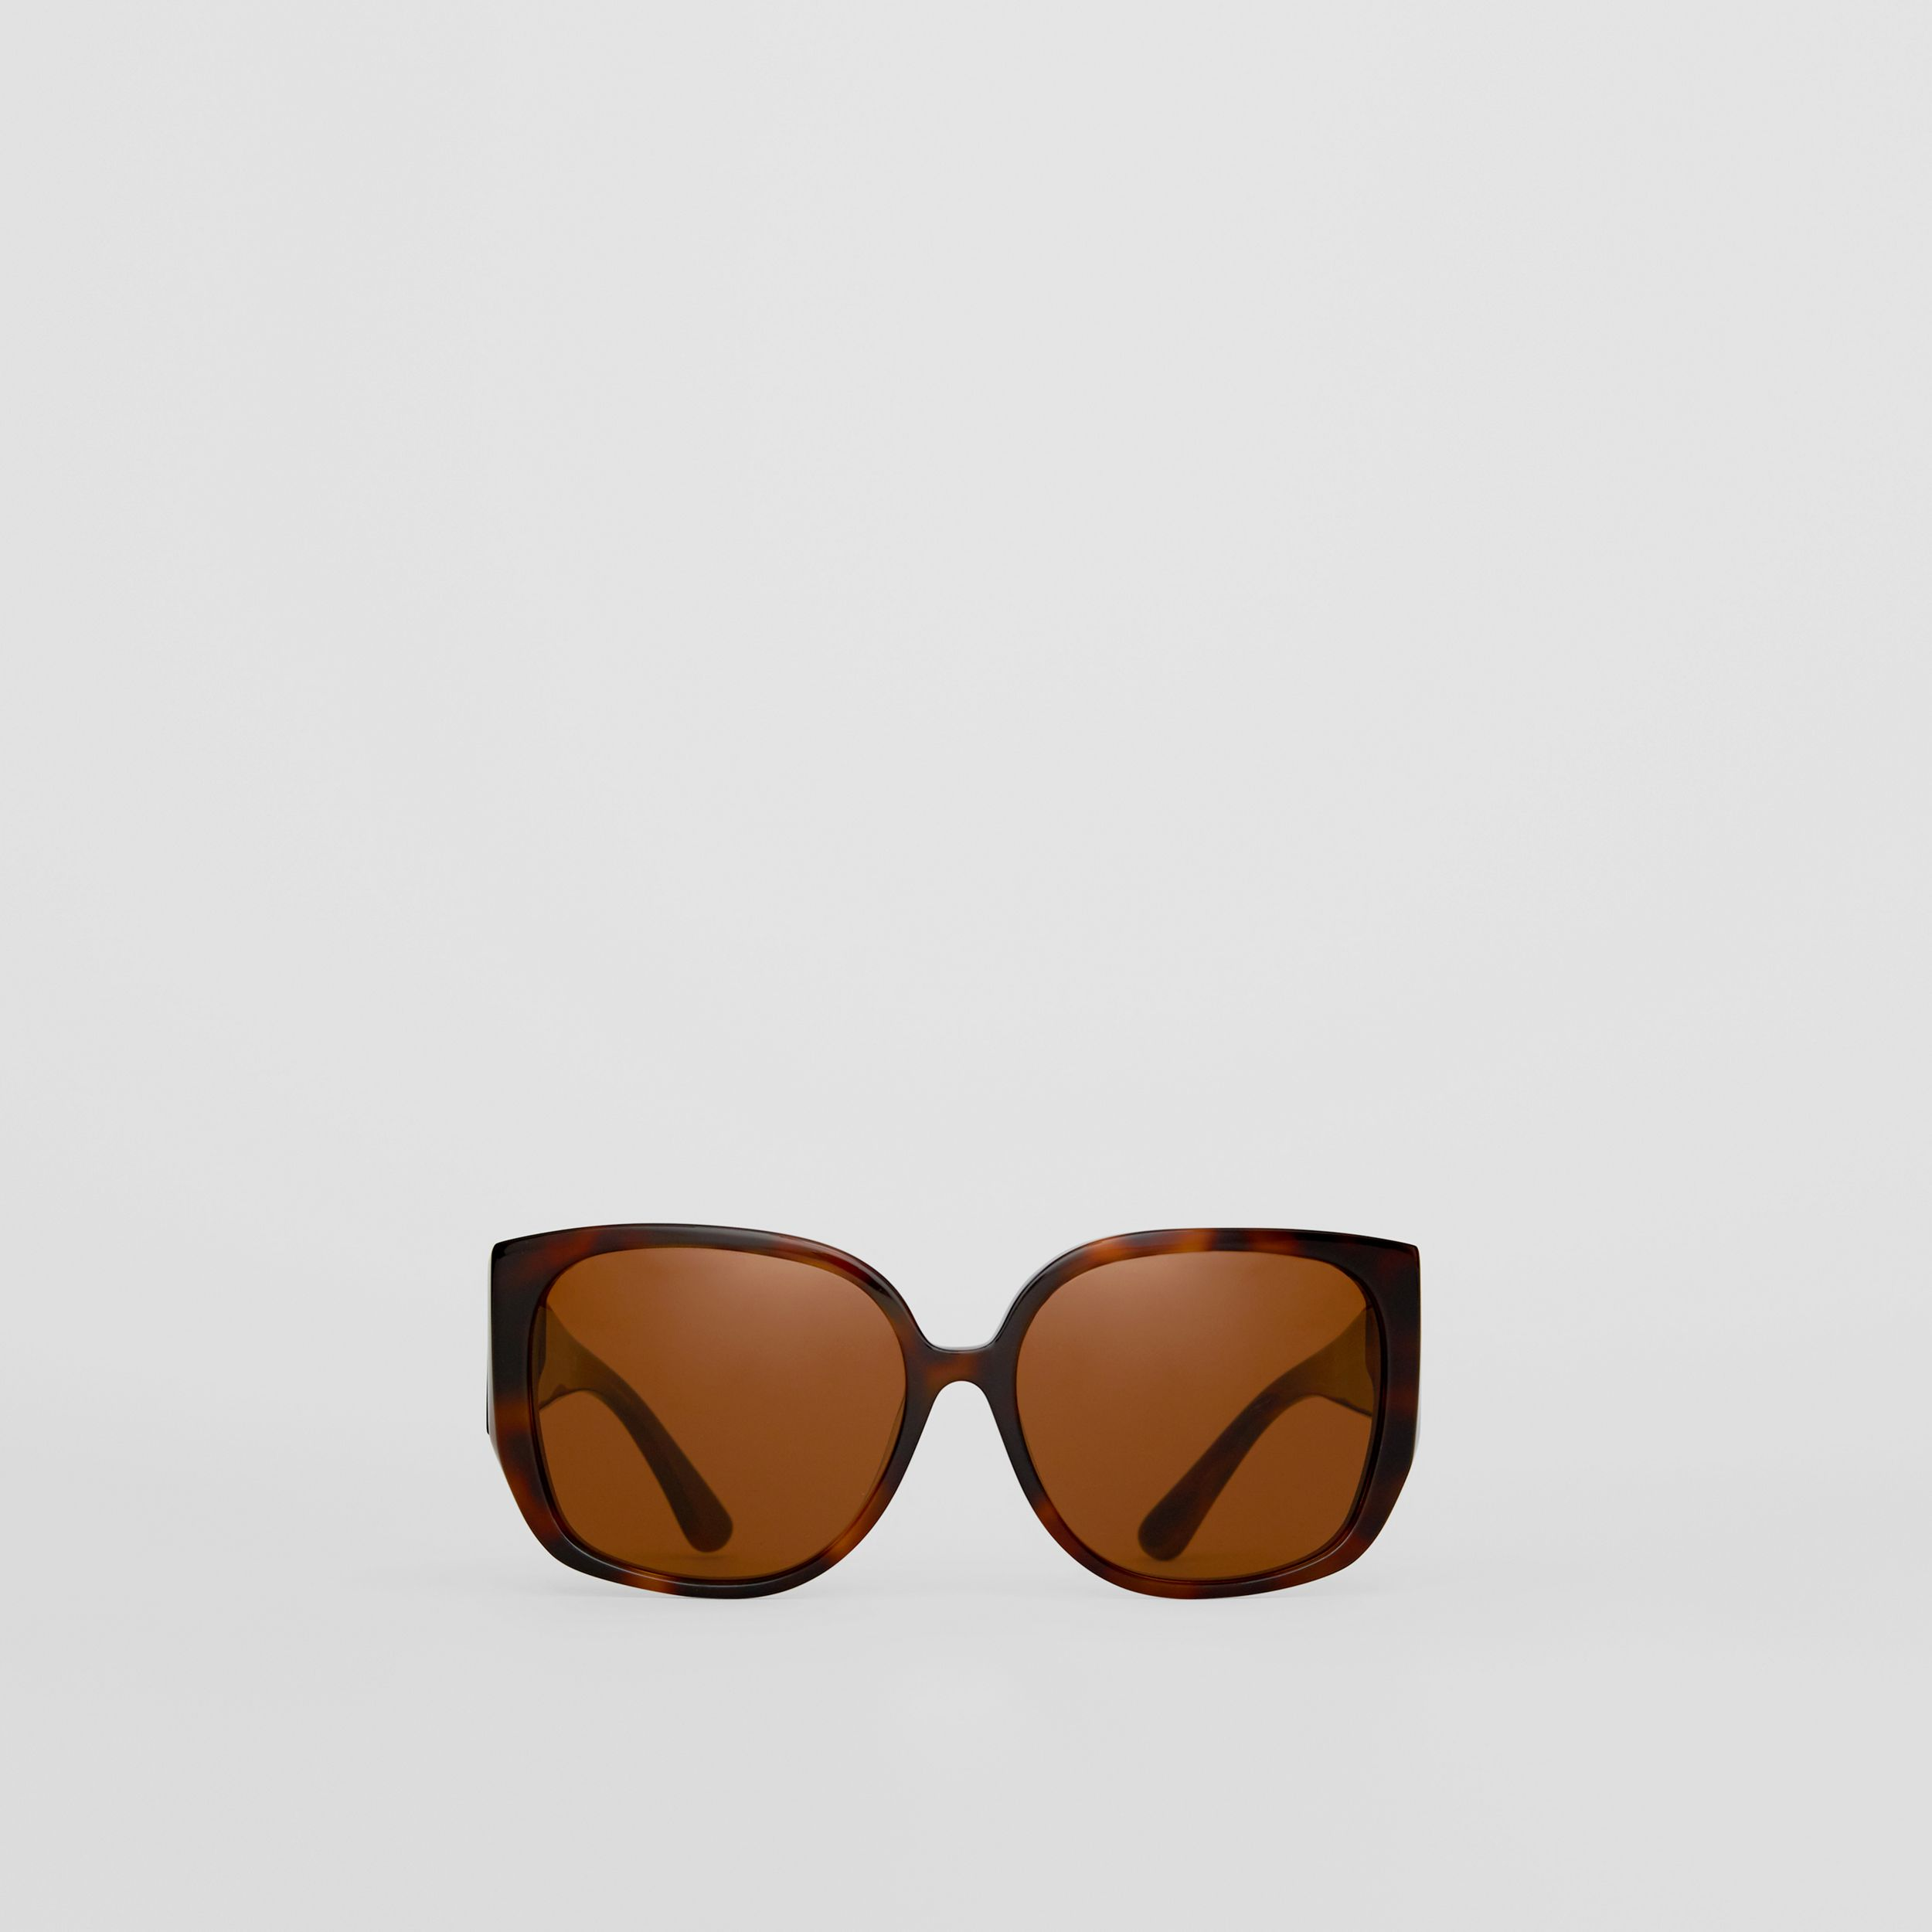 Oversized Butterfly Frame Sunglasses in Tortoiseshell - Women | Burberry Hong Kong S.A.R. - 1